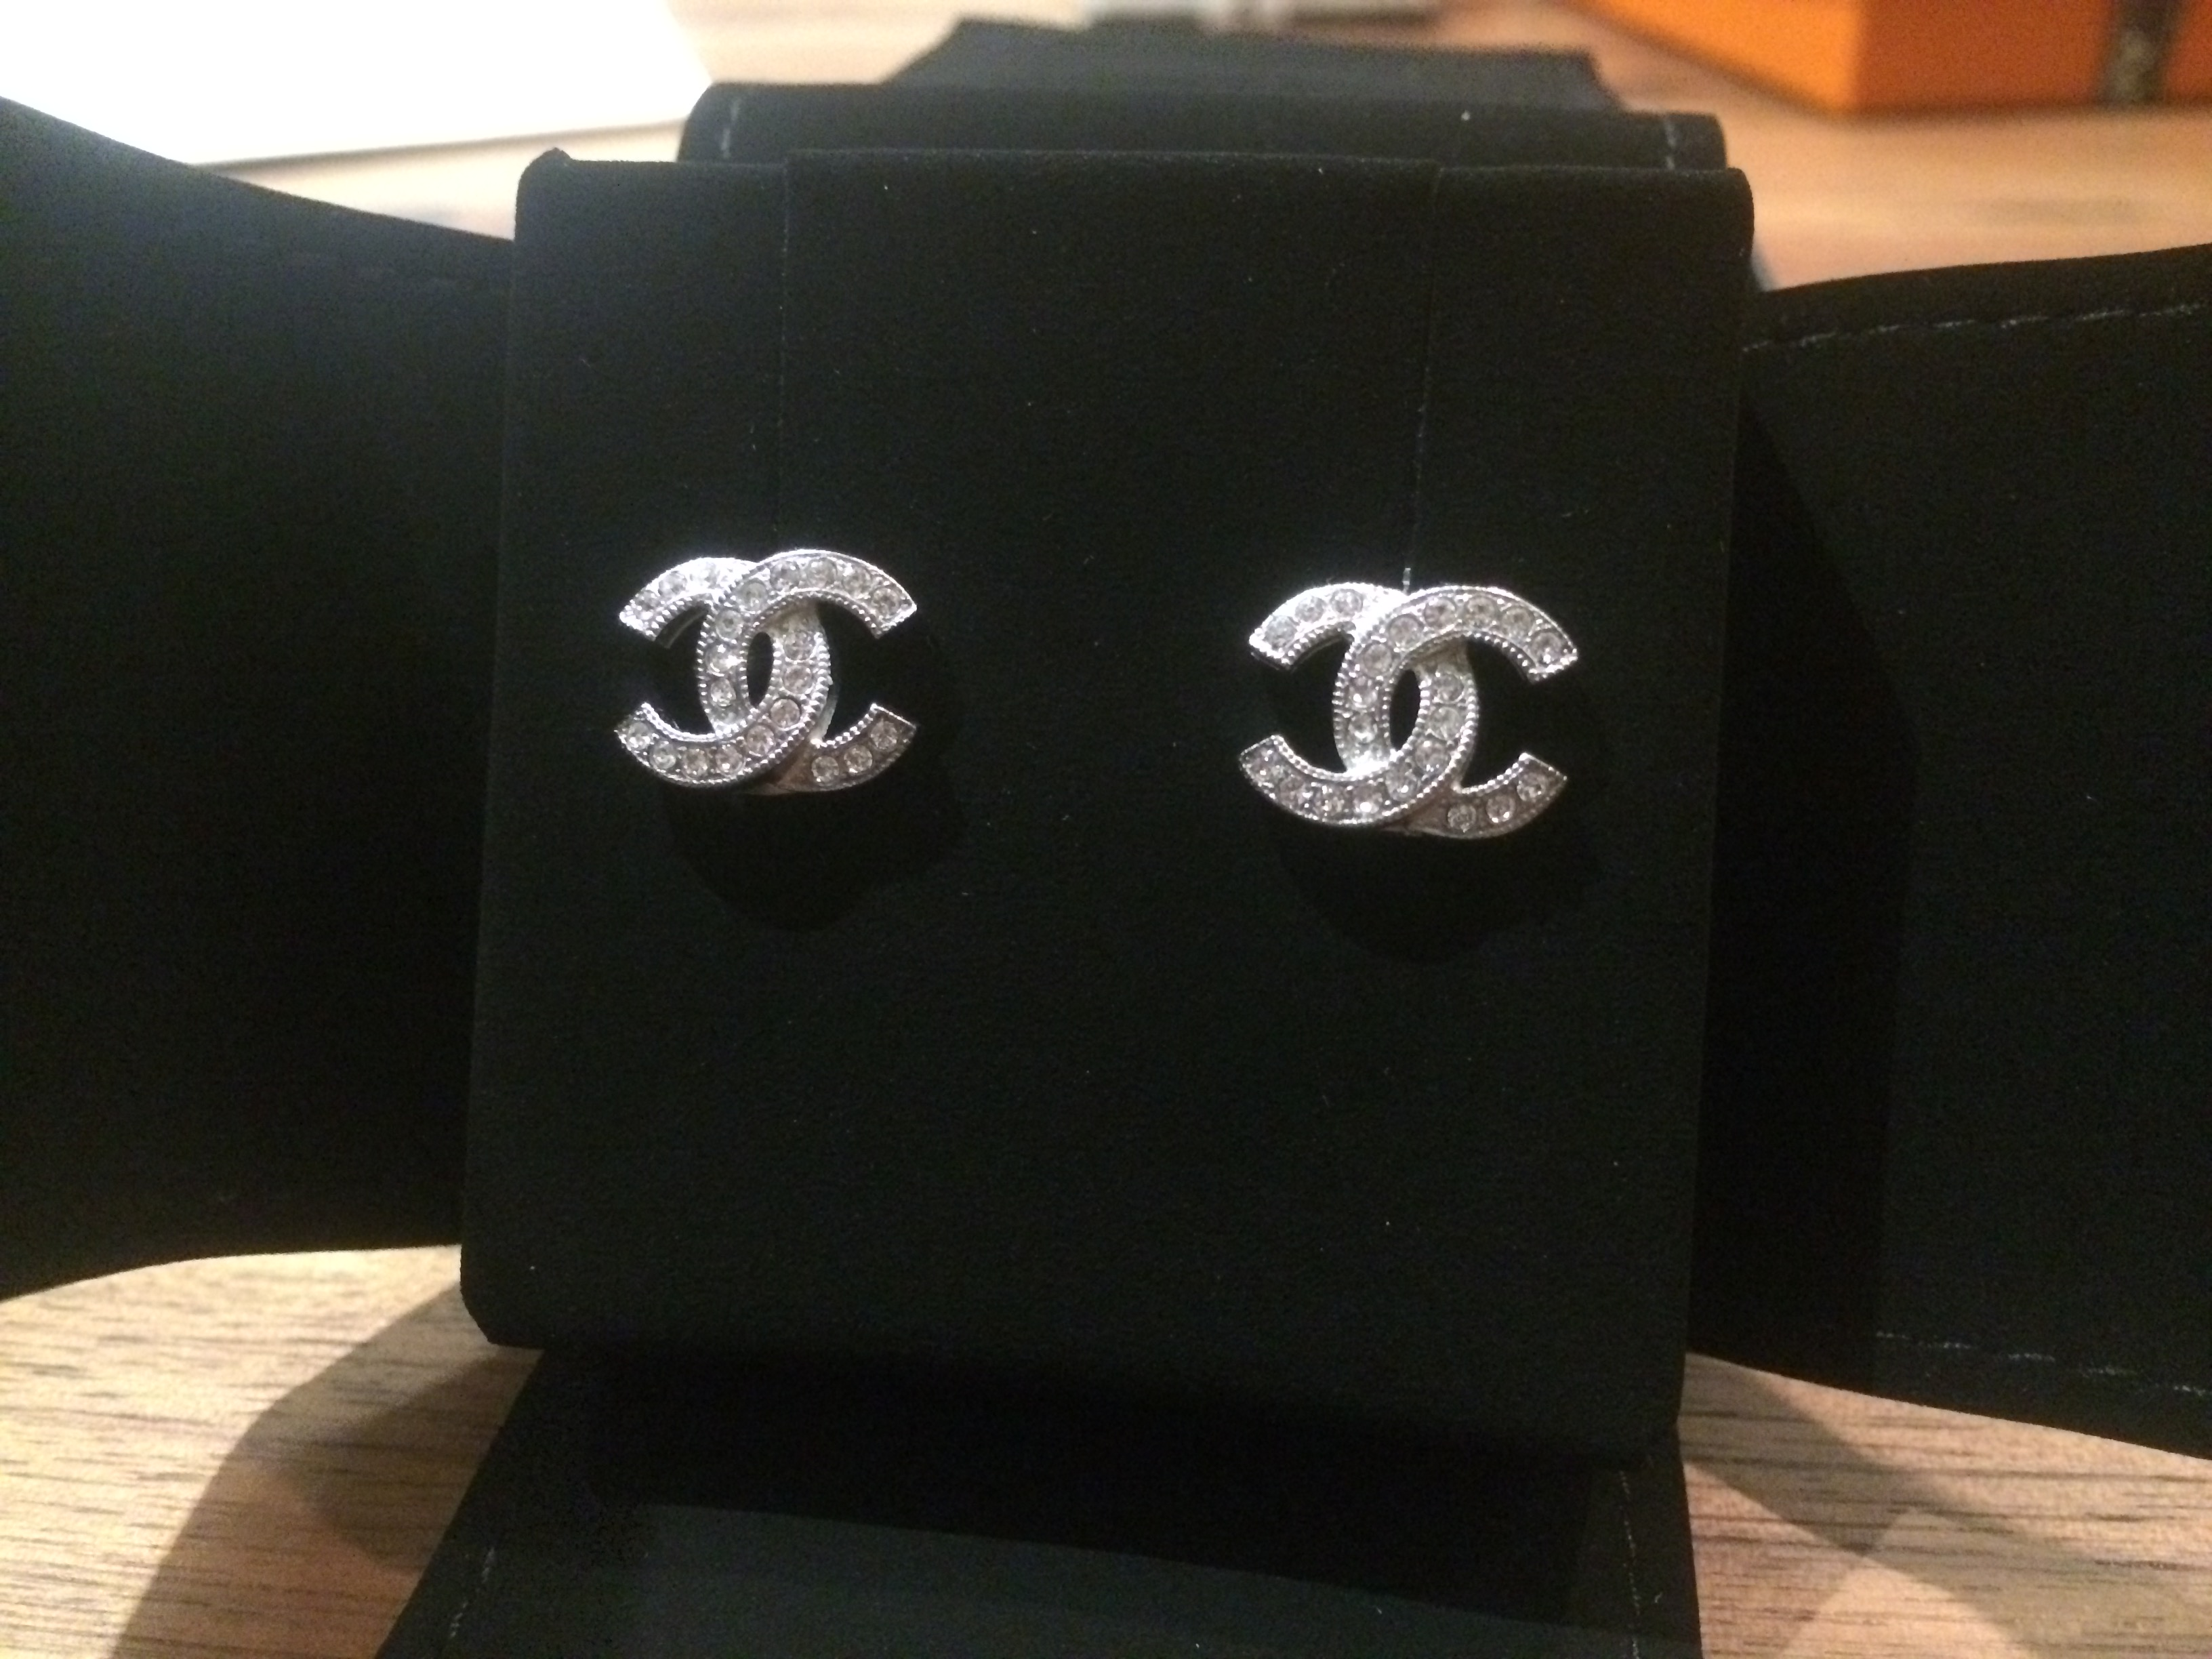 SOLD] FOR SALE: BNIB DOUBLE C EMBLEM CHANEL EARRINGS.